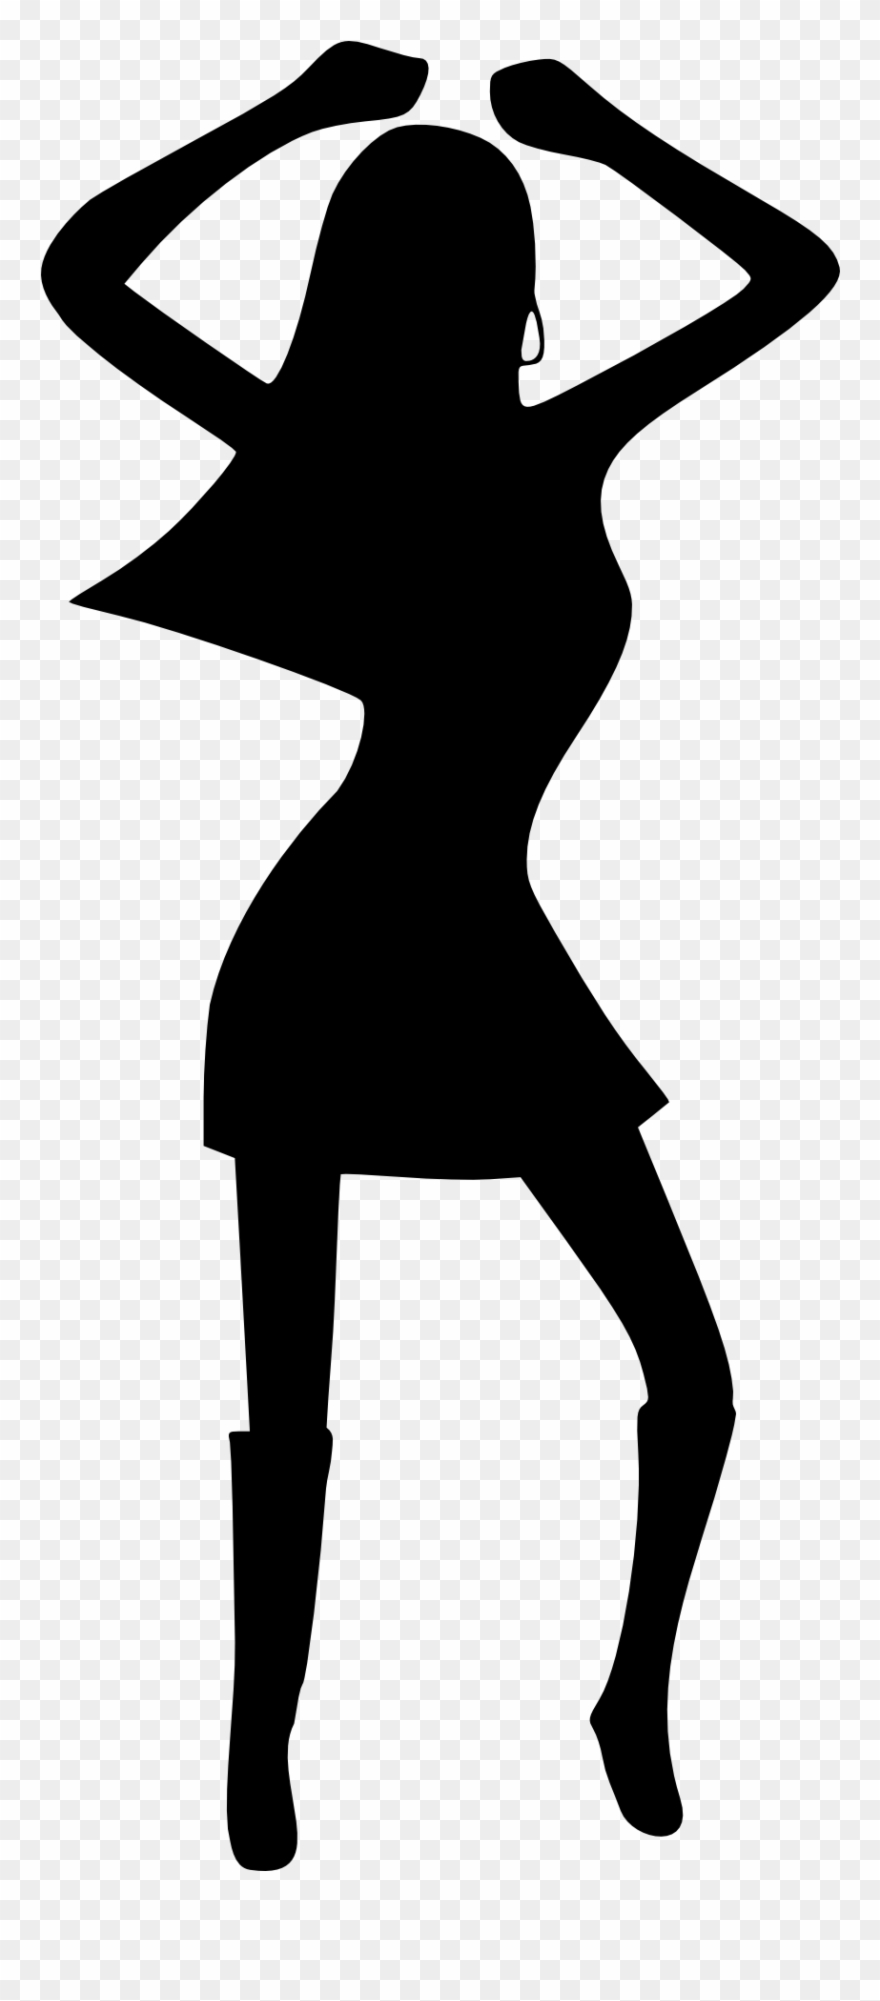 Disco dancer clipart svg royalty free library Girl Woman Dancing Disco Black White Drawing Silhouette - Disco ... svg royalty free library